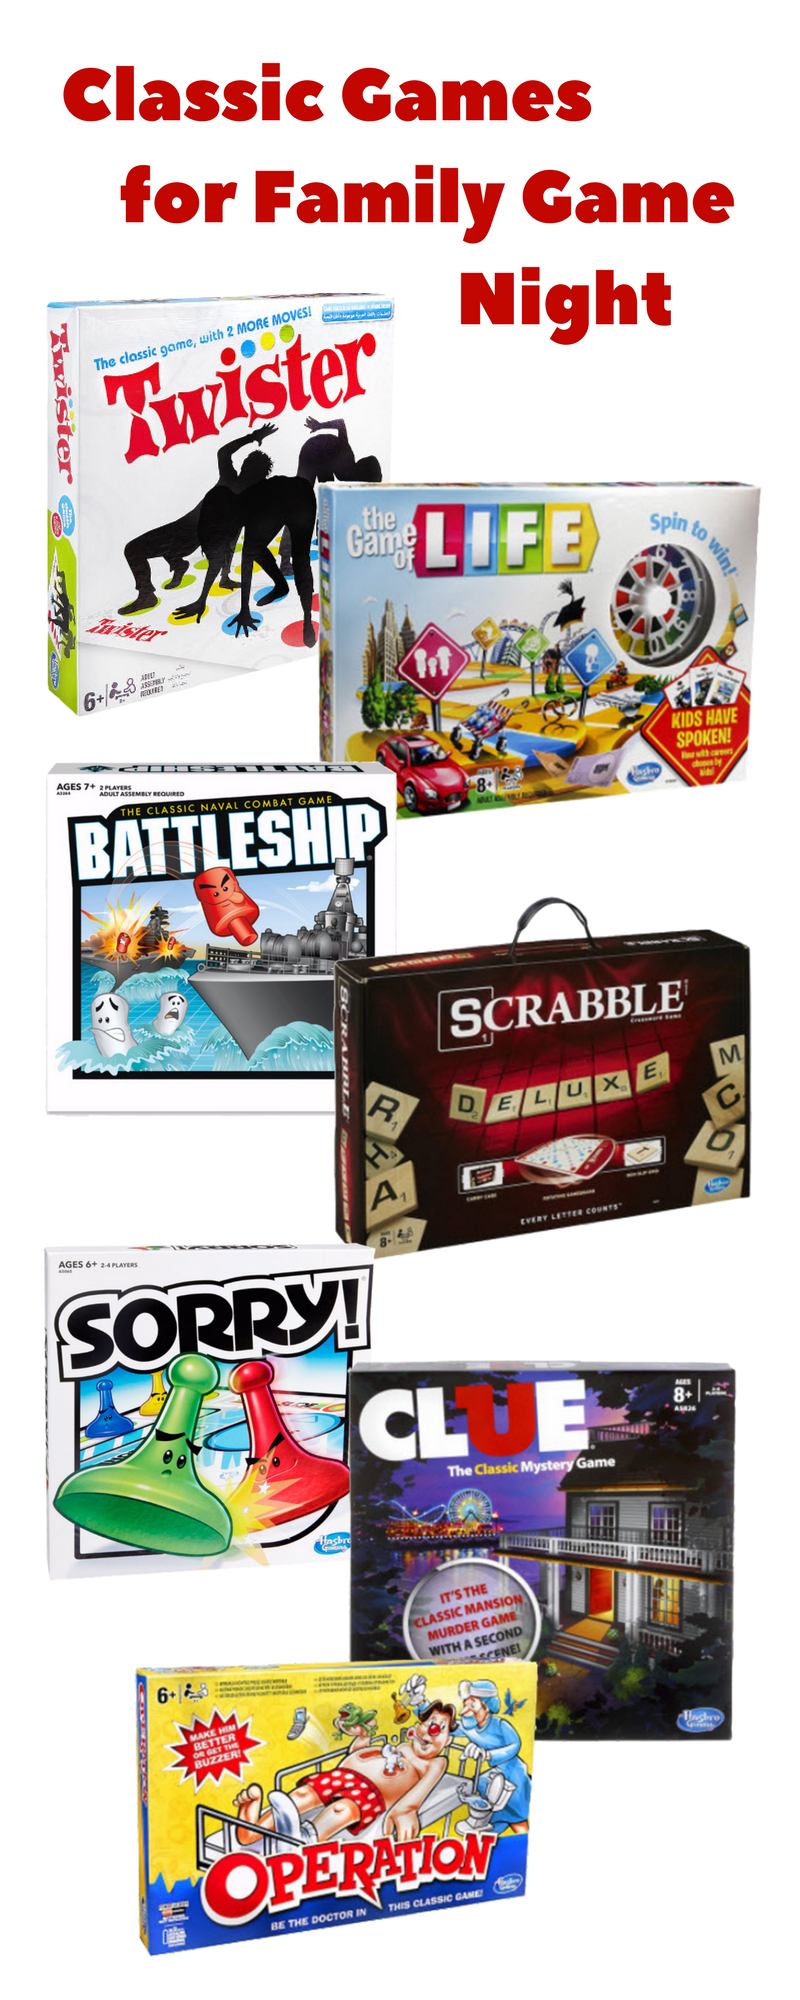 Enjoy family game night with these classic Hasbro board